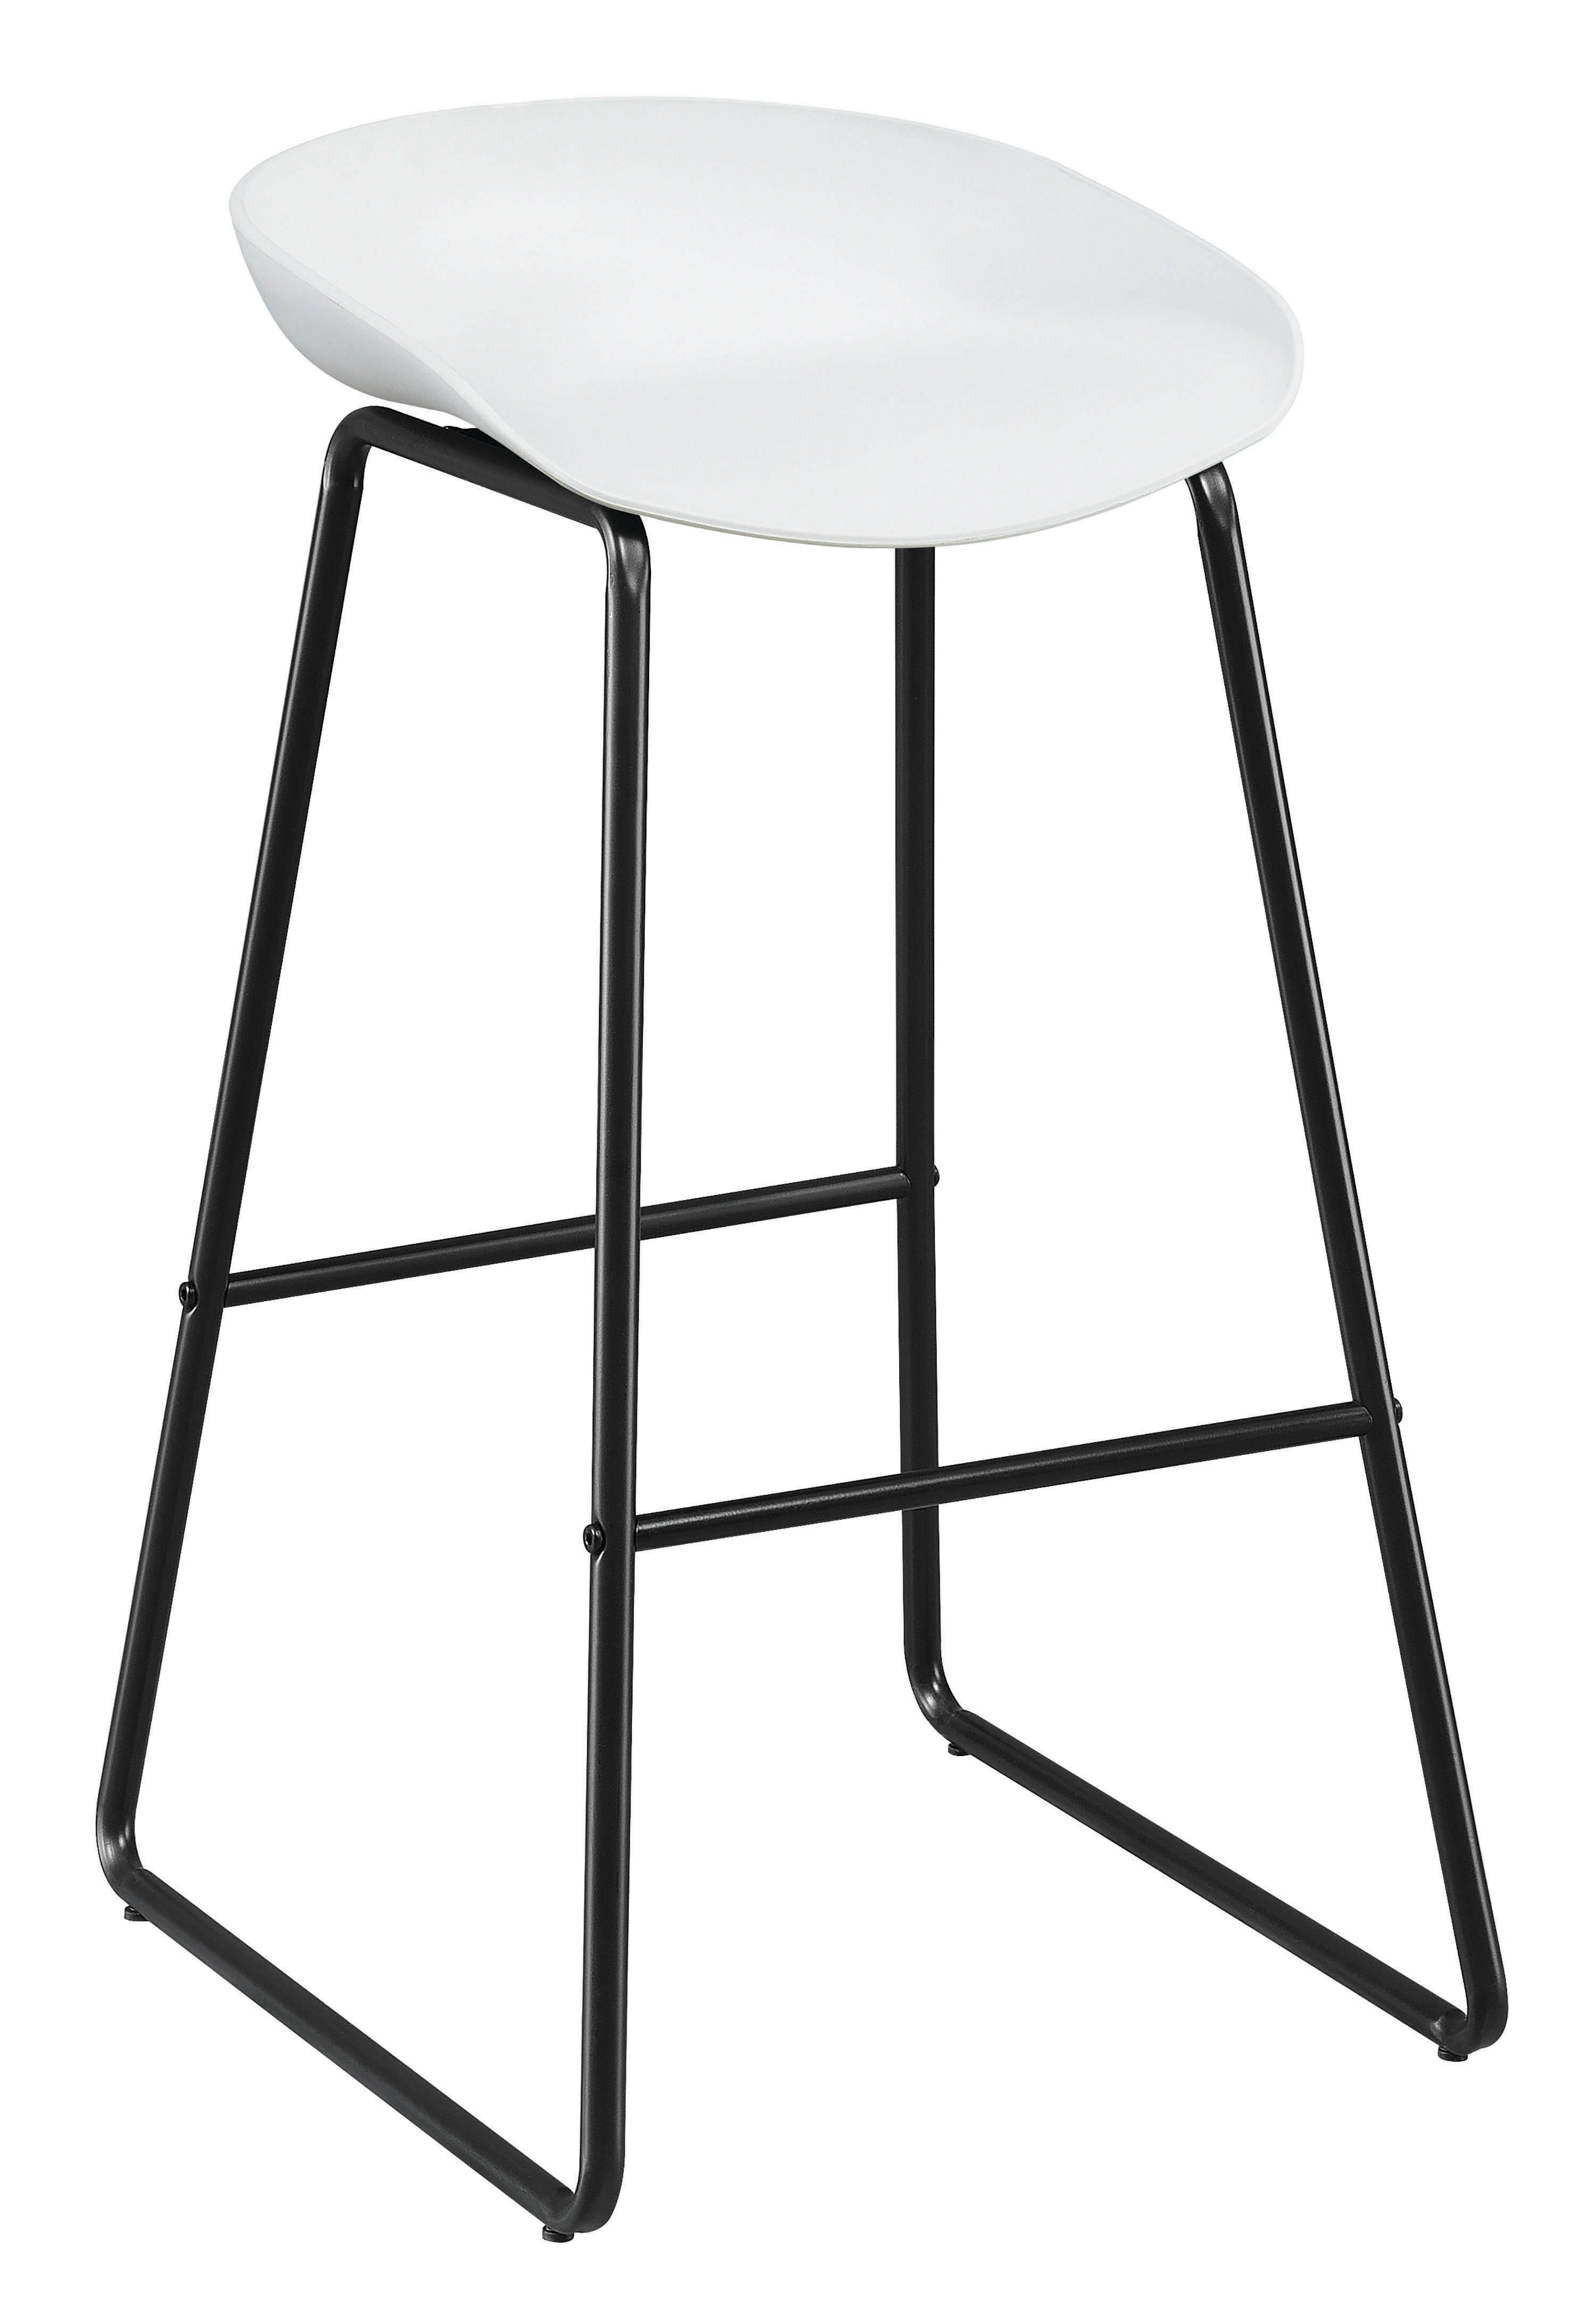 Awe Inspiring Coaster Furniture Bar Stool In White Gmtry Best Dining Table And Chair Ideas Images Gmtryco